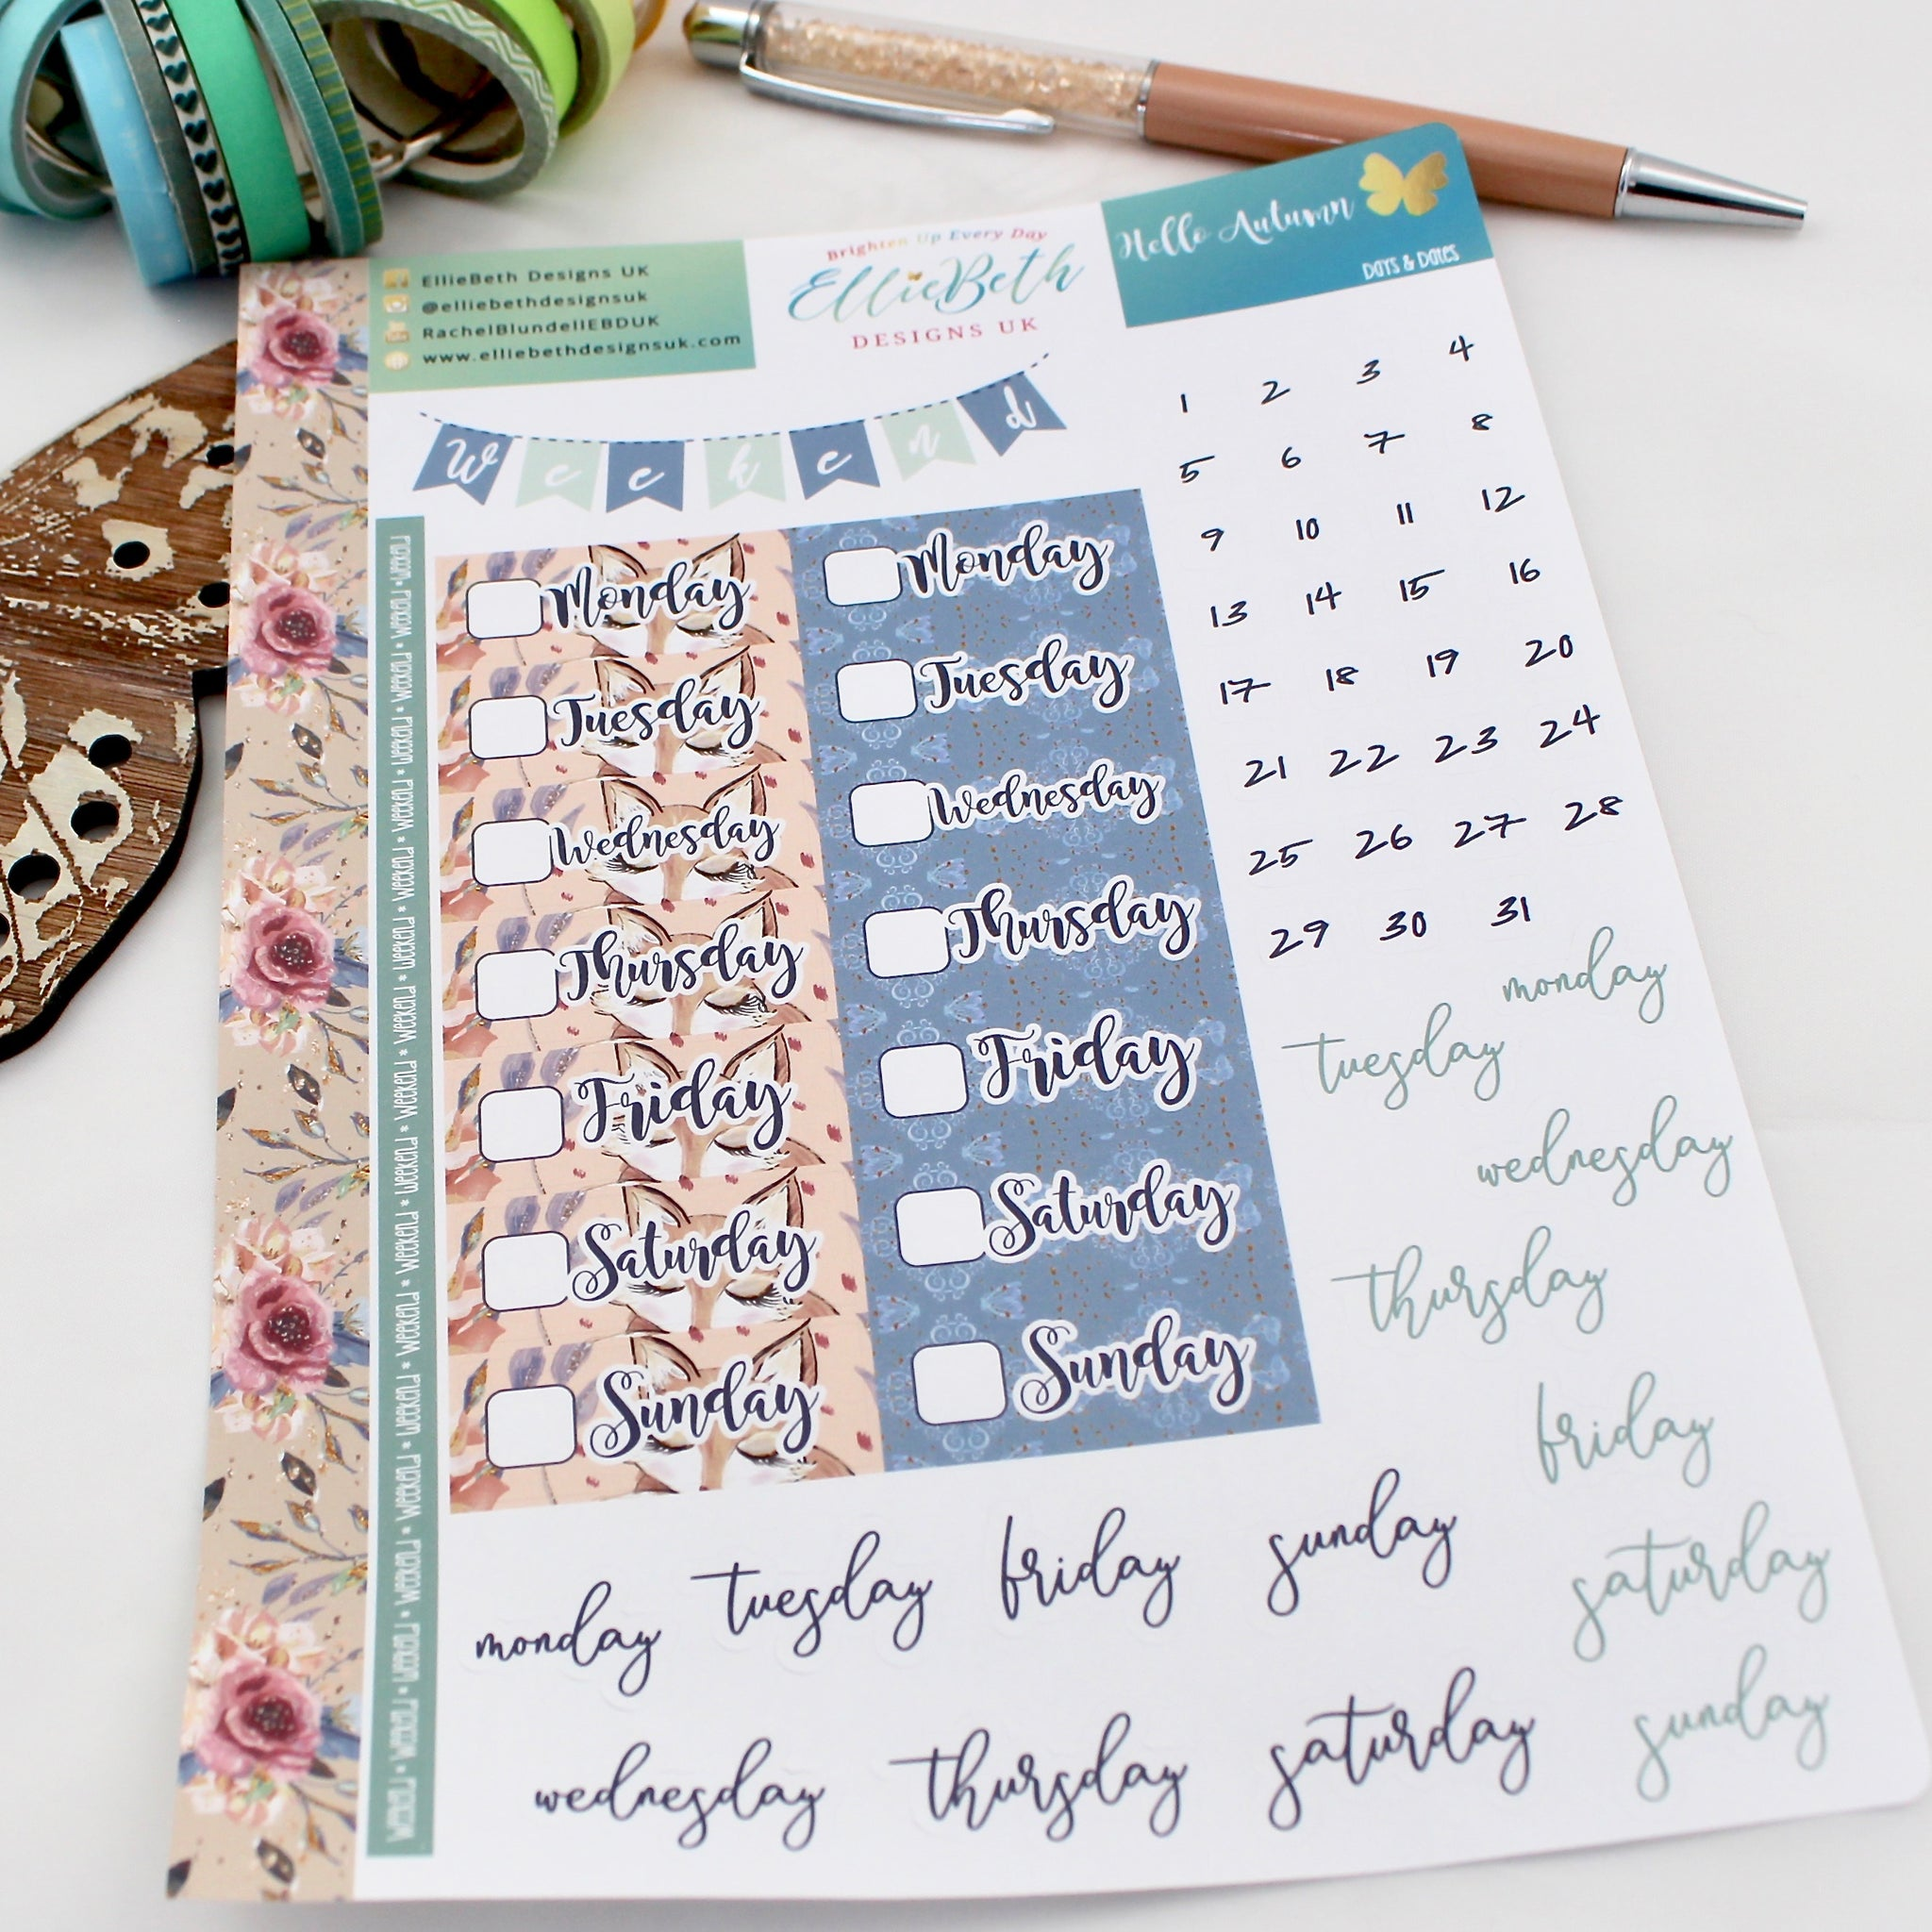 'Hello Autumn' - Days and Dates - A5 binder ready planner stickers